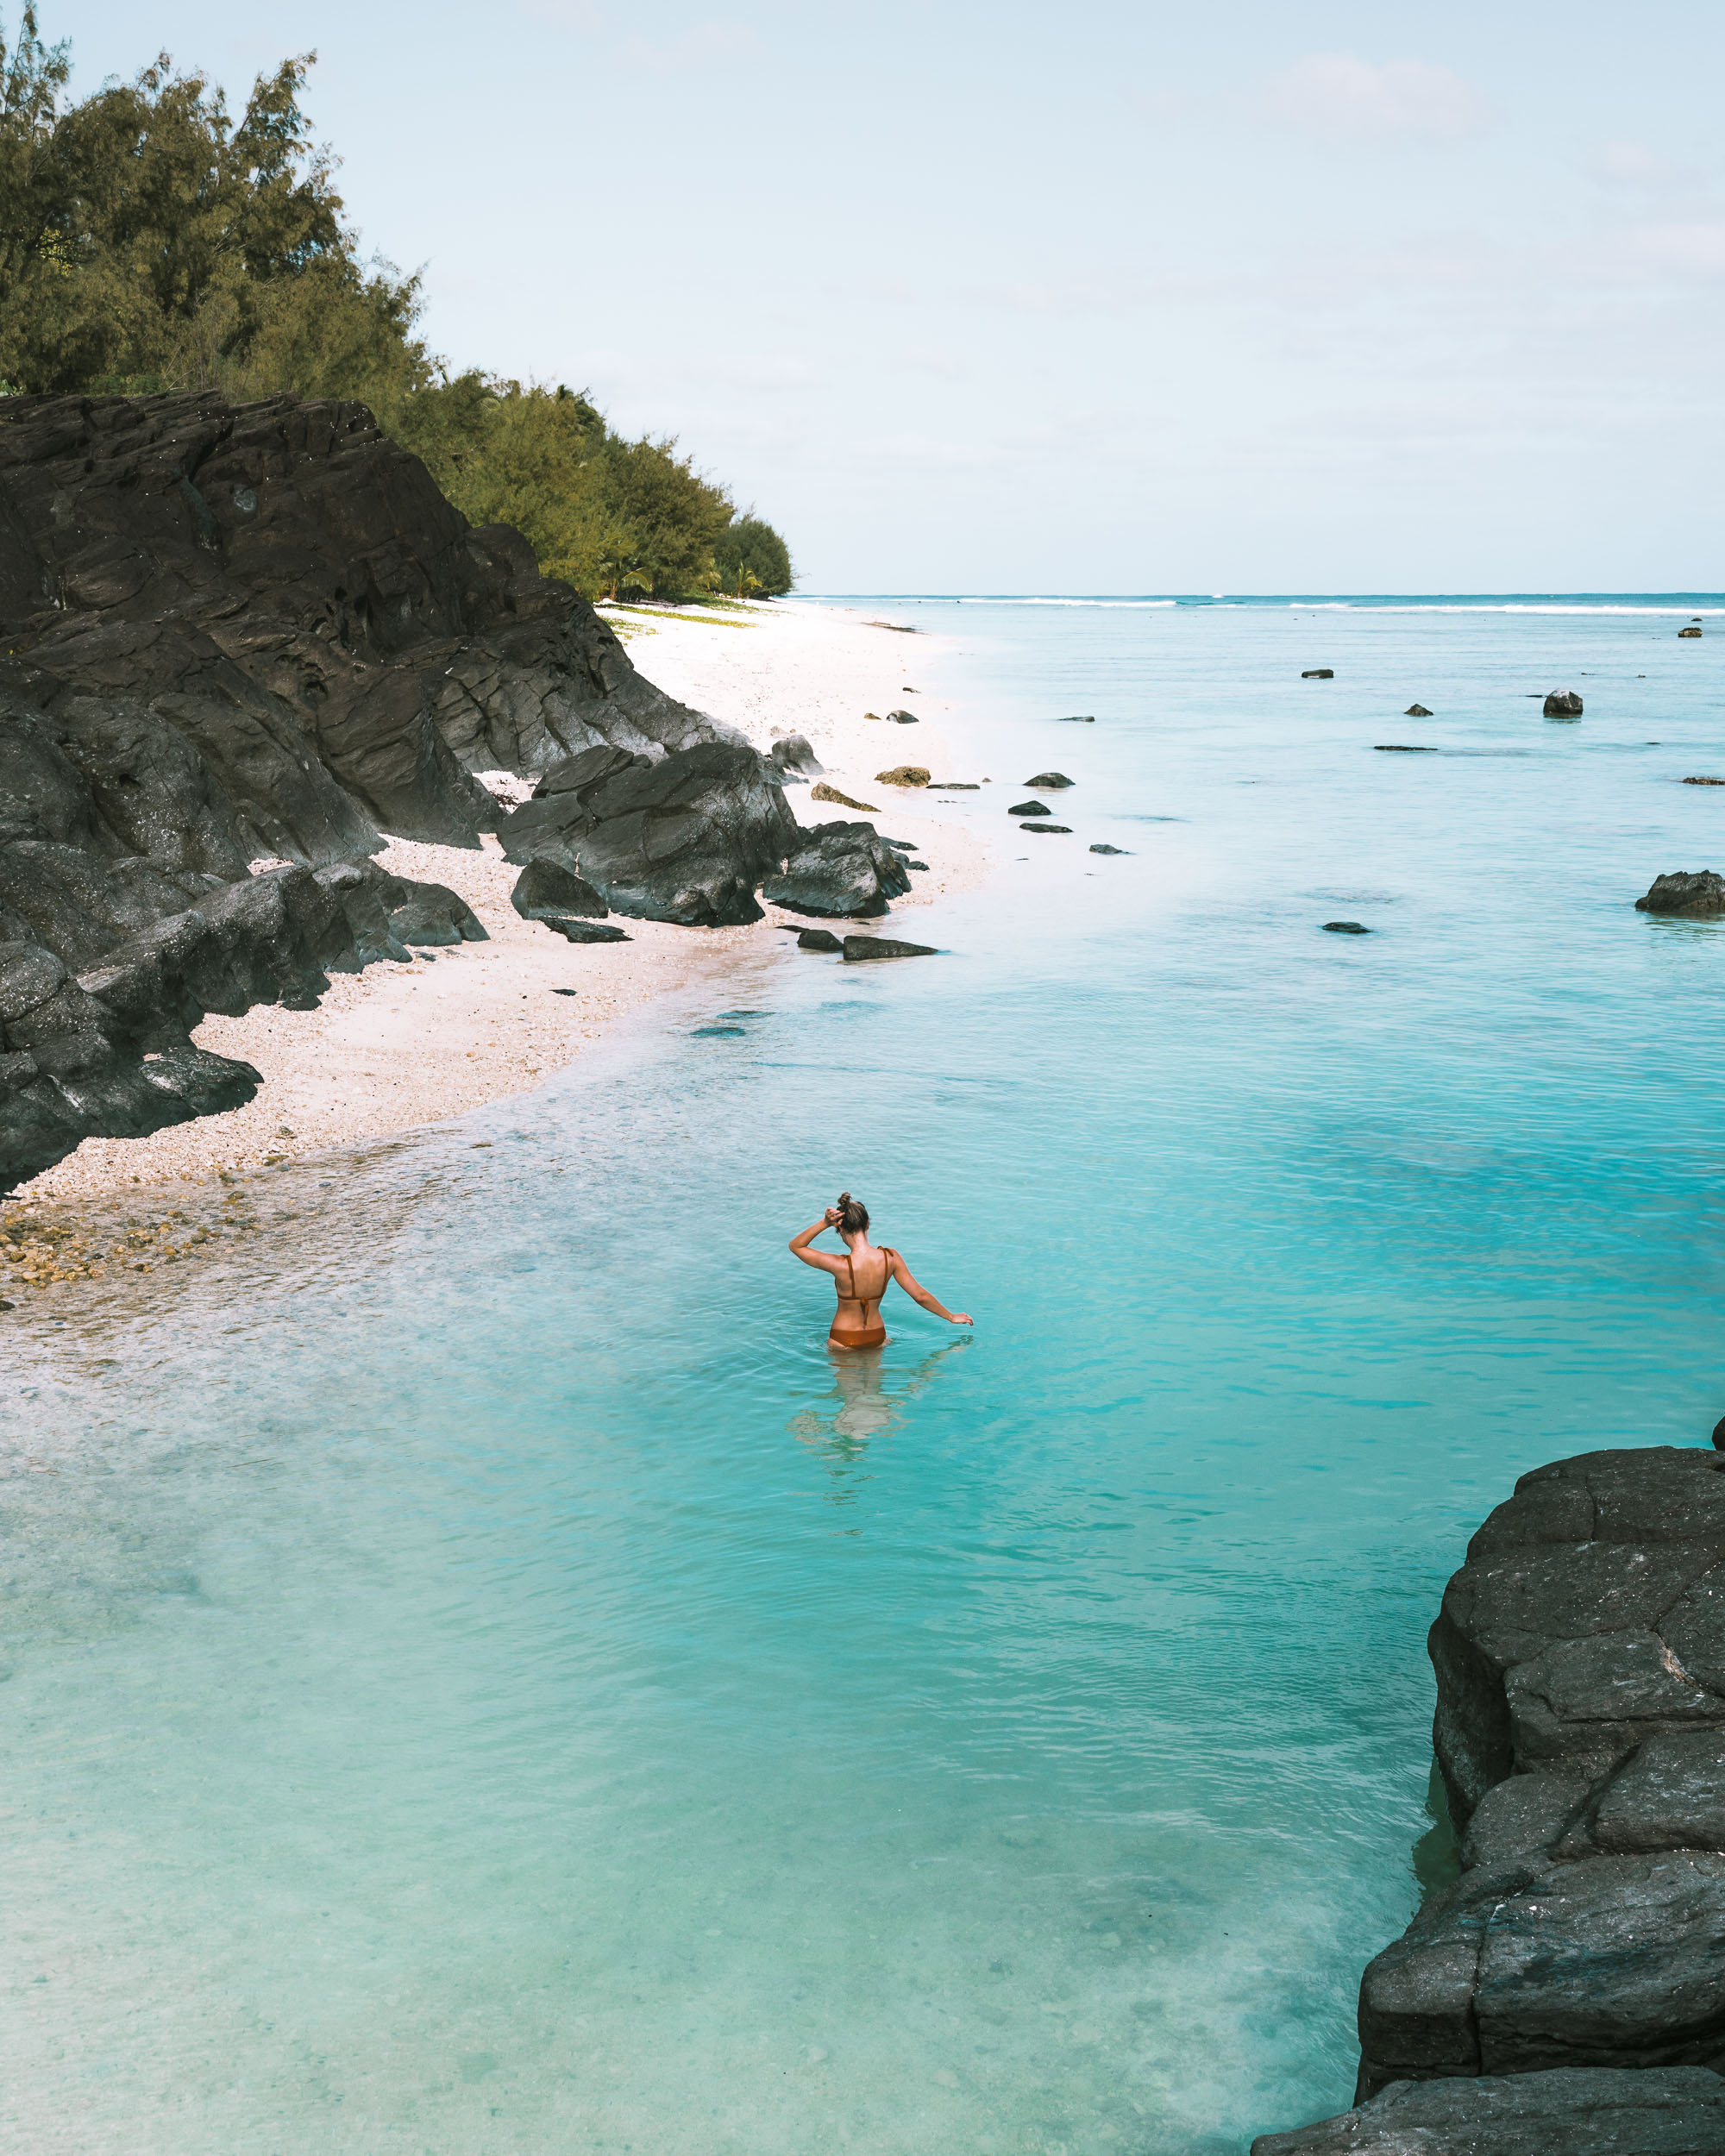 Swimming at black rock beach in Rarotonga, Cook Islands